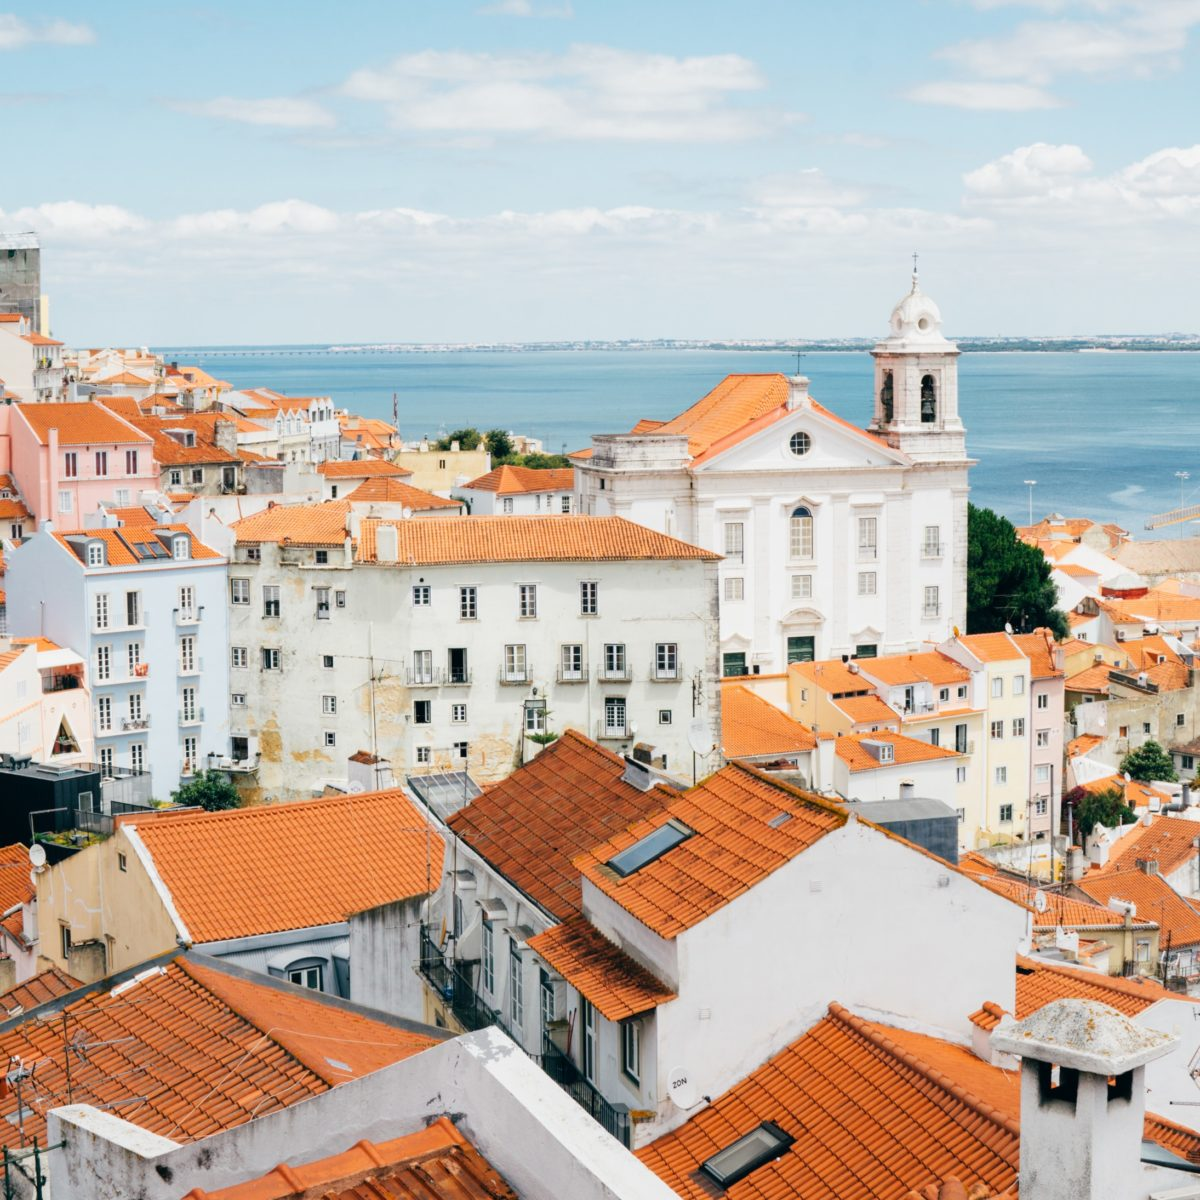 An amazing city view from Lisbon, Portugal